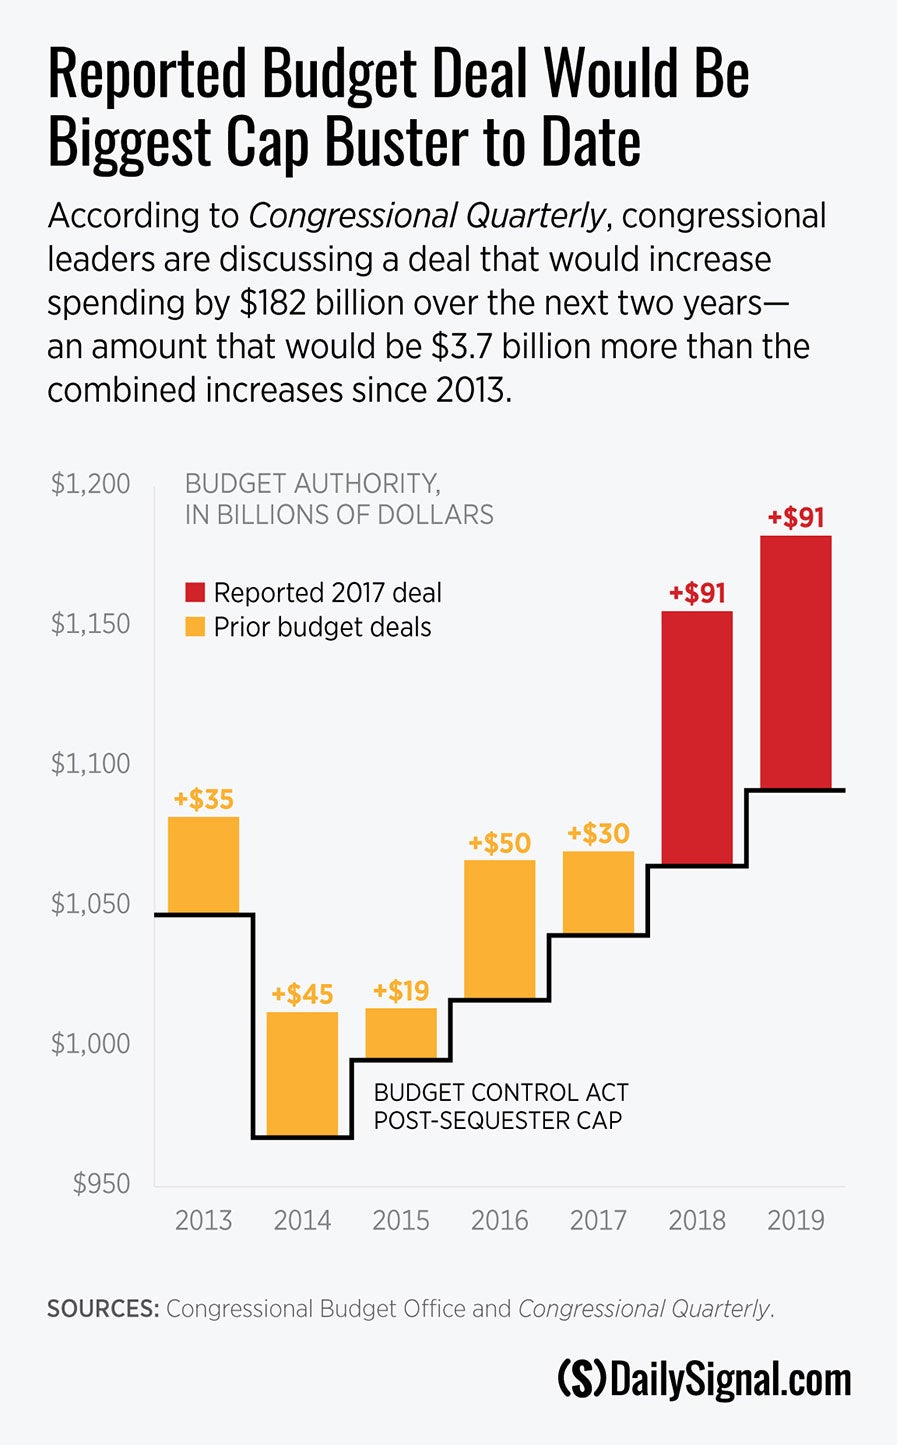 b242450f27f Congress Should Reject a Reckless Budget Deal That Busts Spending ...